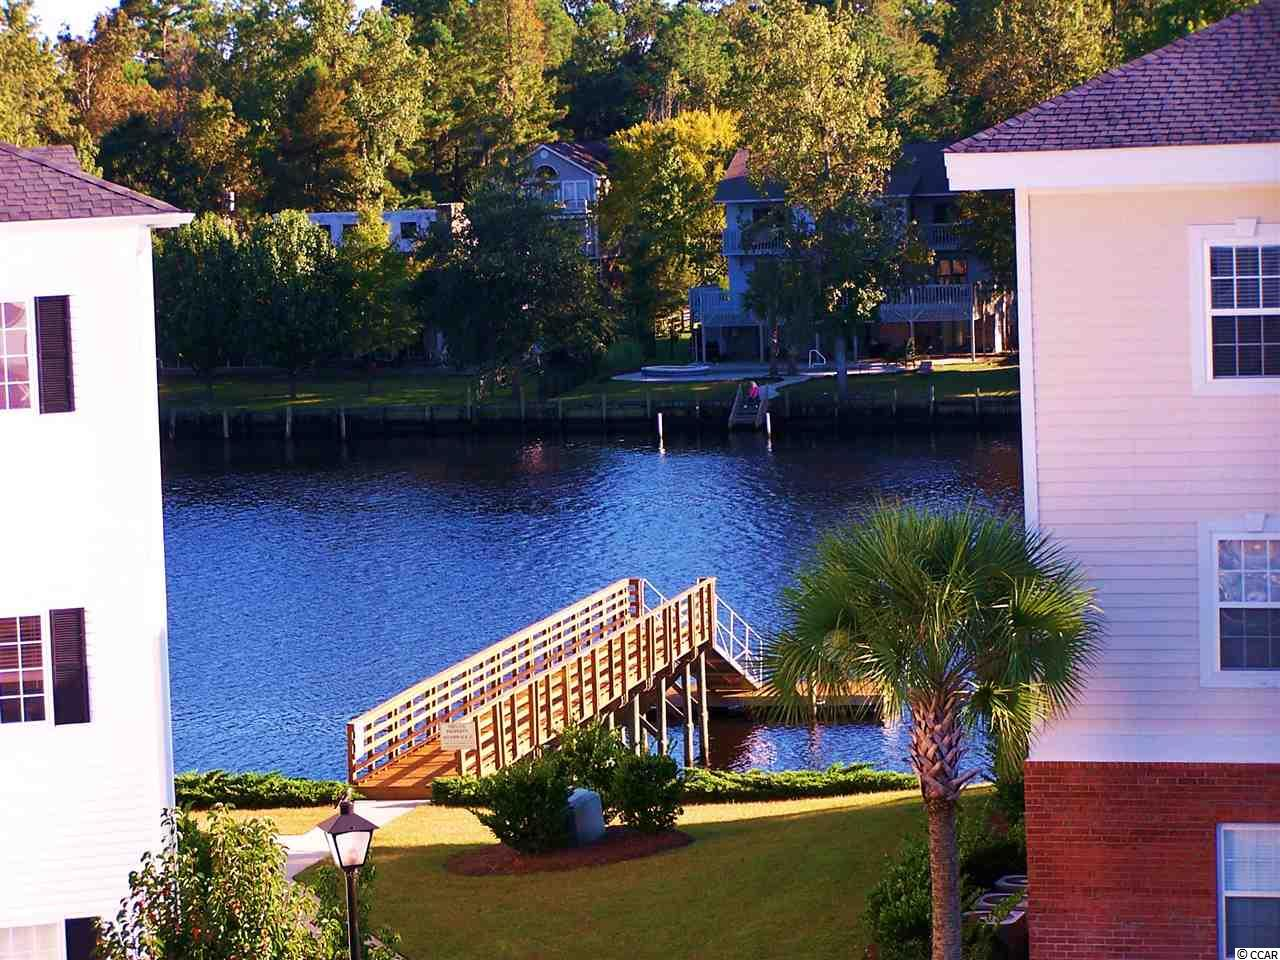 RIVERWALK II condo for sale in Myrtle Beach, SC